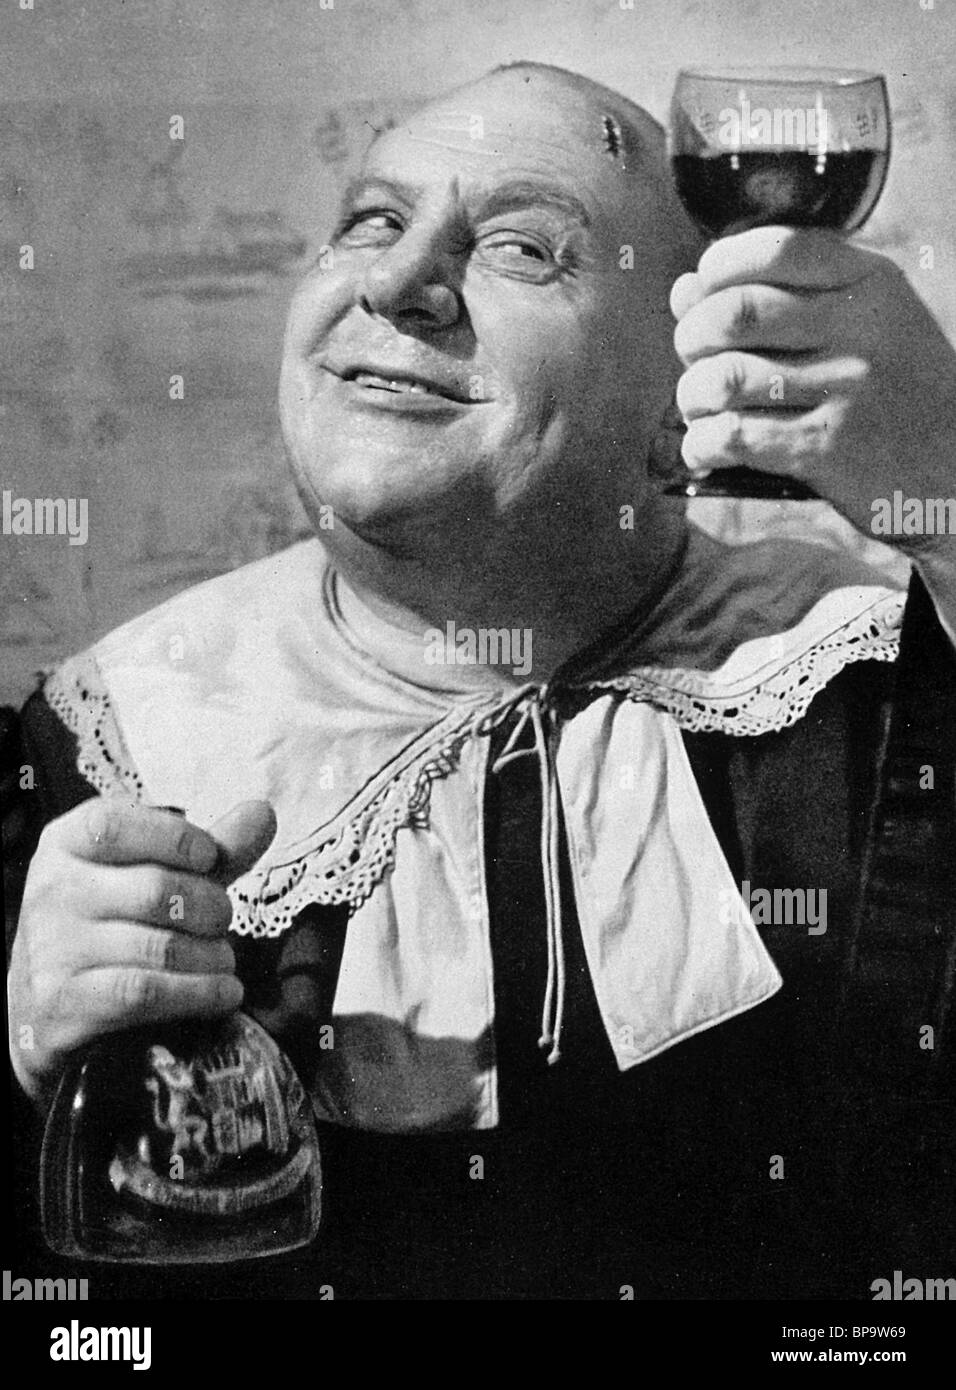 EMIL JANNINGS THE BROKEN JUG (1937) - Stock Image